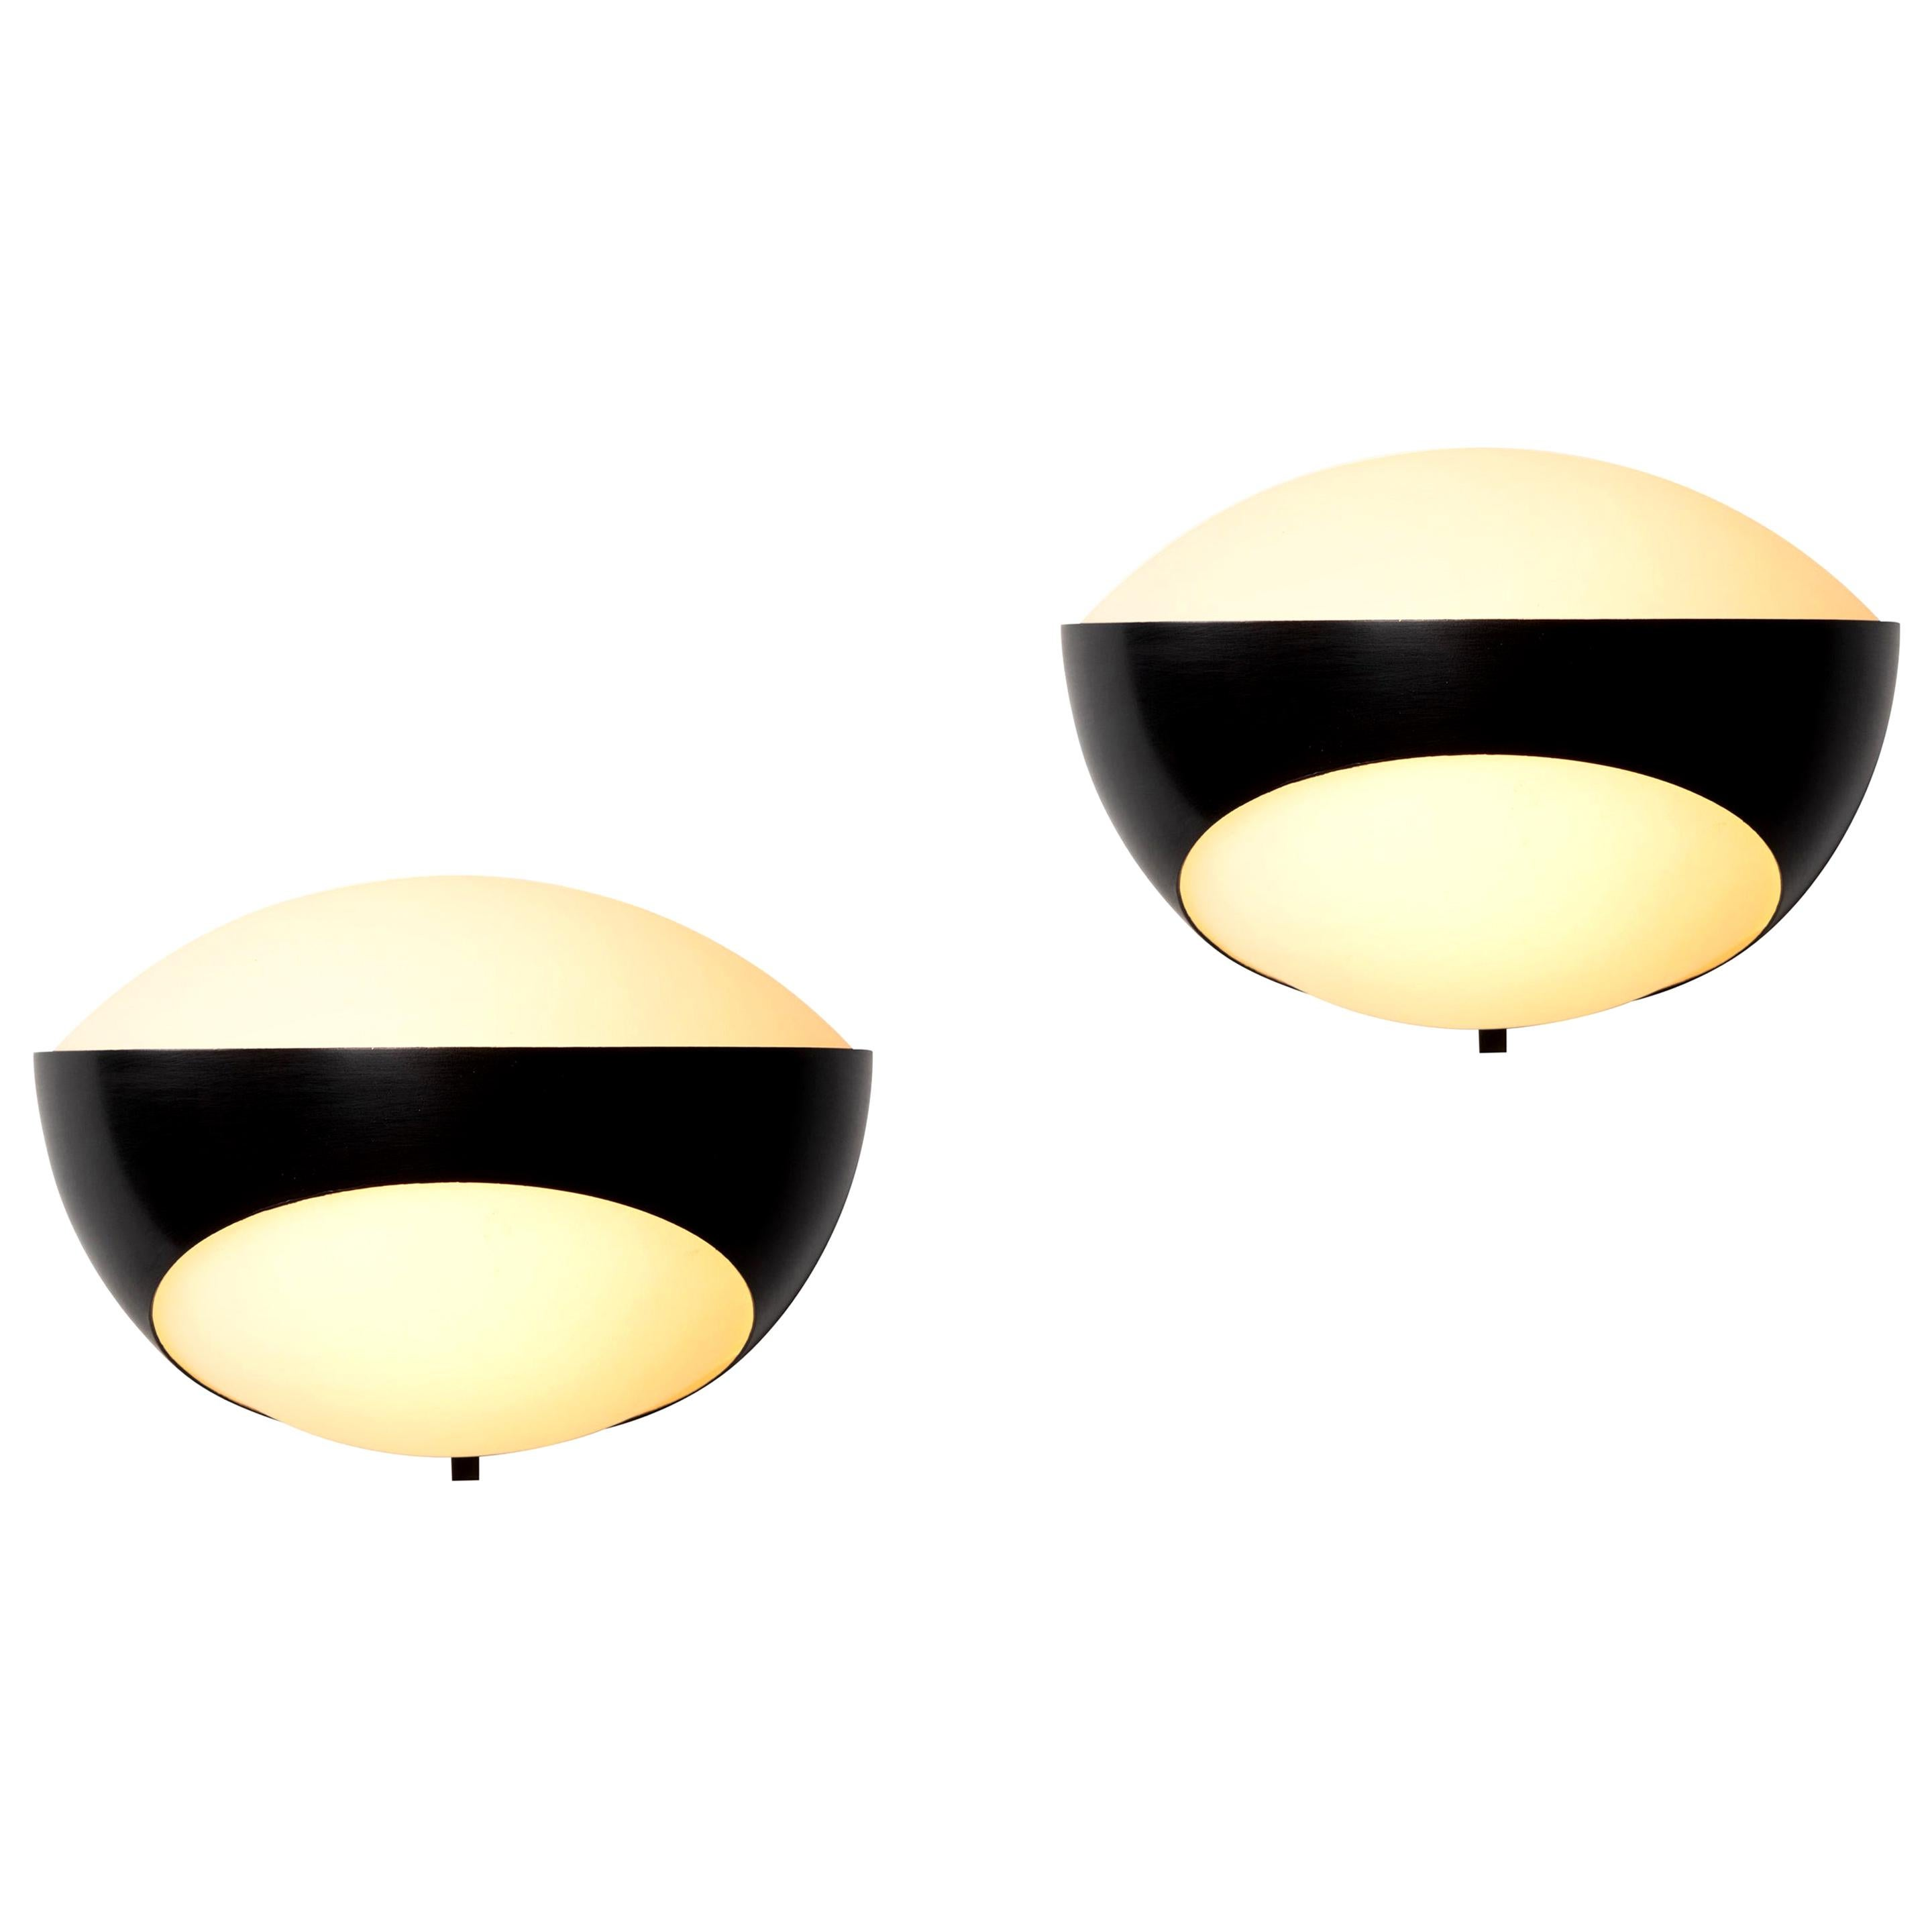 Pair of Max Ingrand '1963' Sconces for Fontana Arte